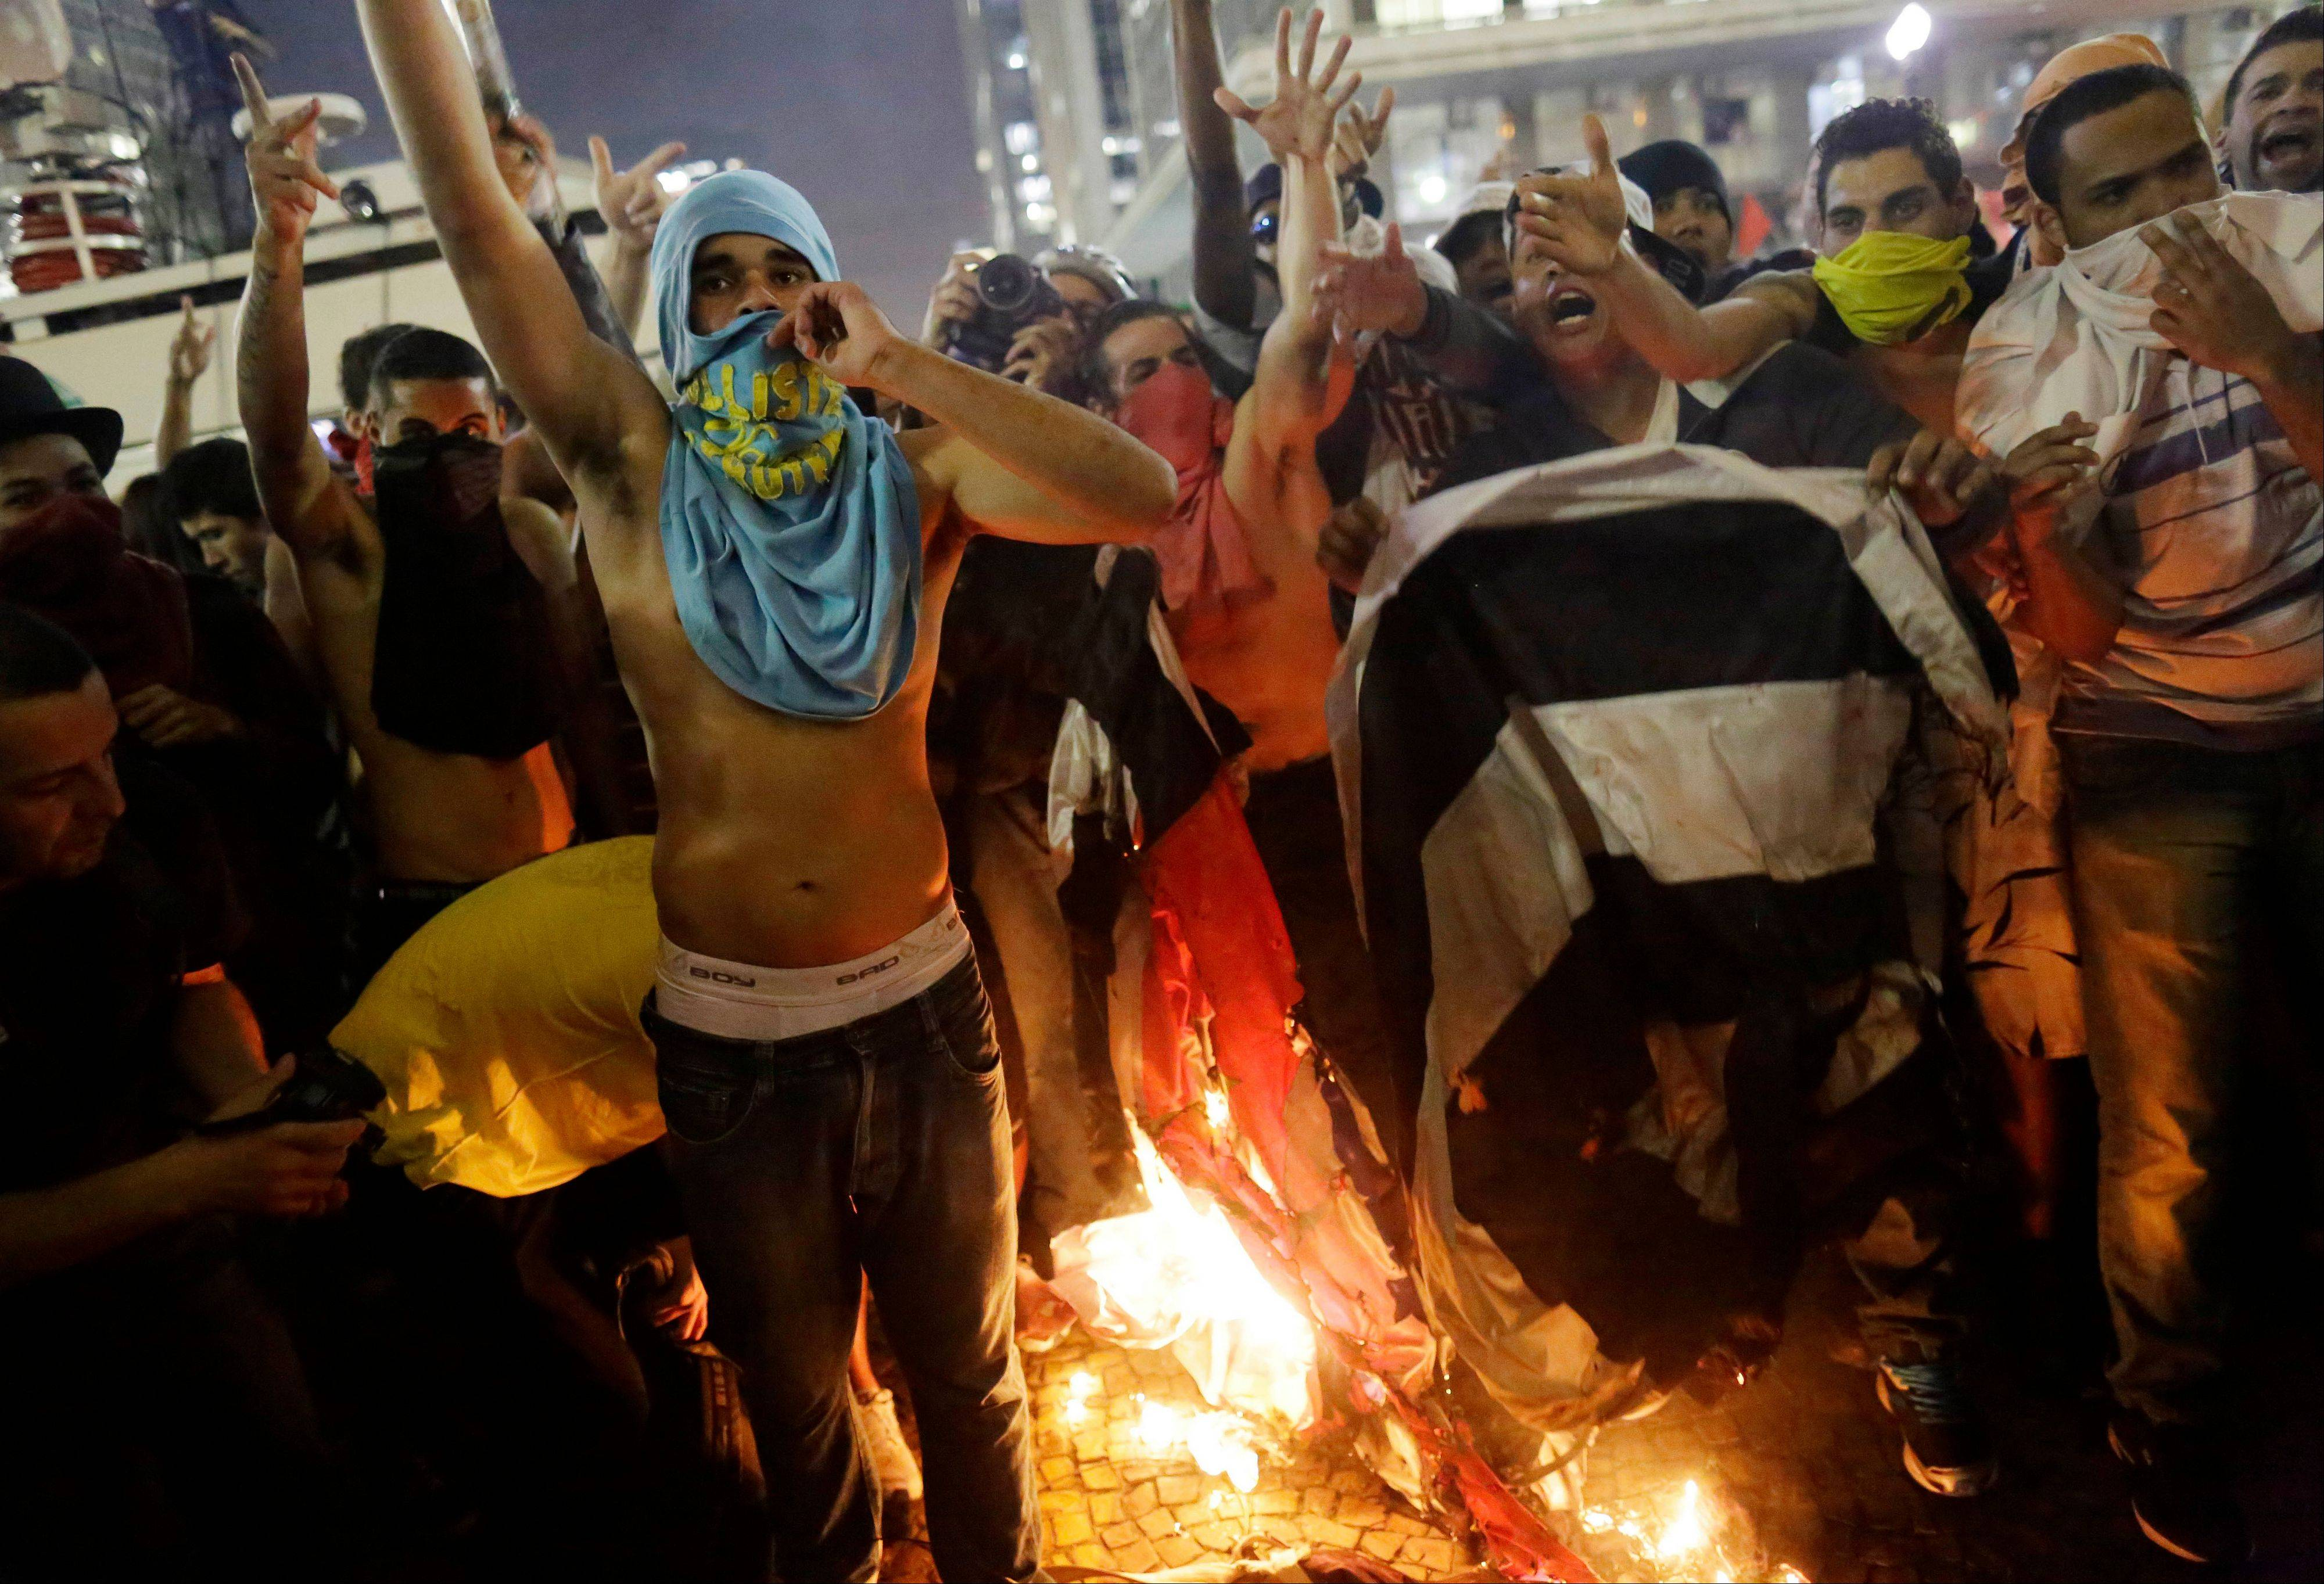 Protesters burn a Sao Paulo state flag in front of City Hall in Sao Paulo, Brazil, Tuesday. Some of the biggest demonstrations since the end of Brazil's 1964-85 dictatorship have broken out across this continent-sized country, uniting multitudes frustrated by poor transportation, health services, education and security despite a heavy tax burden.